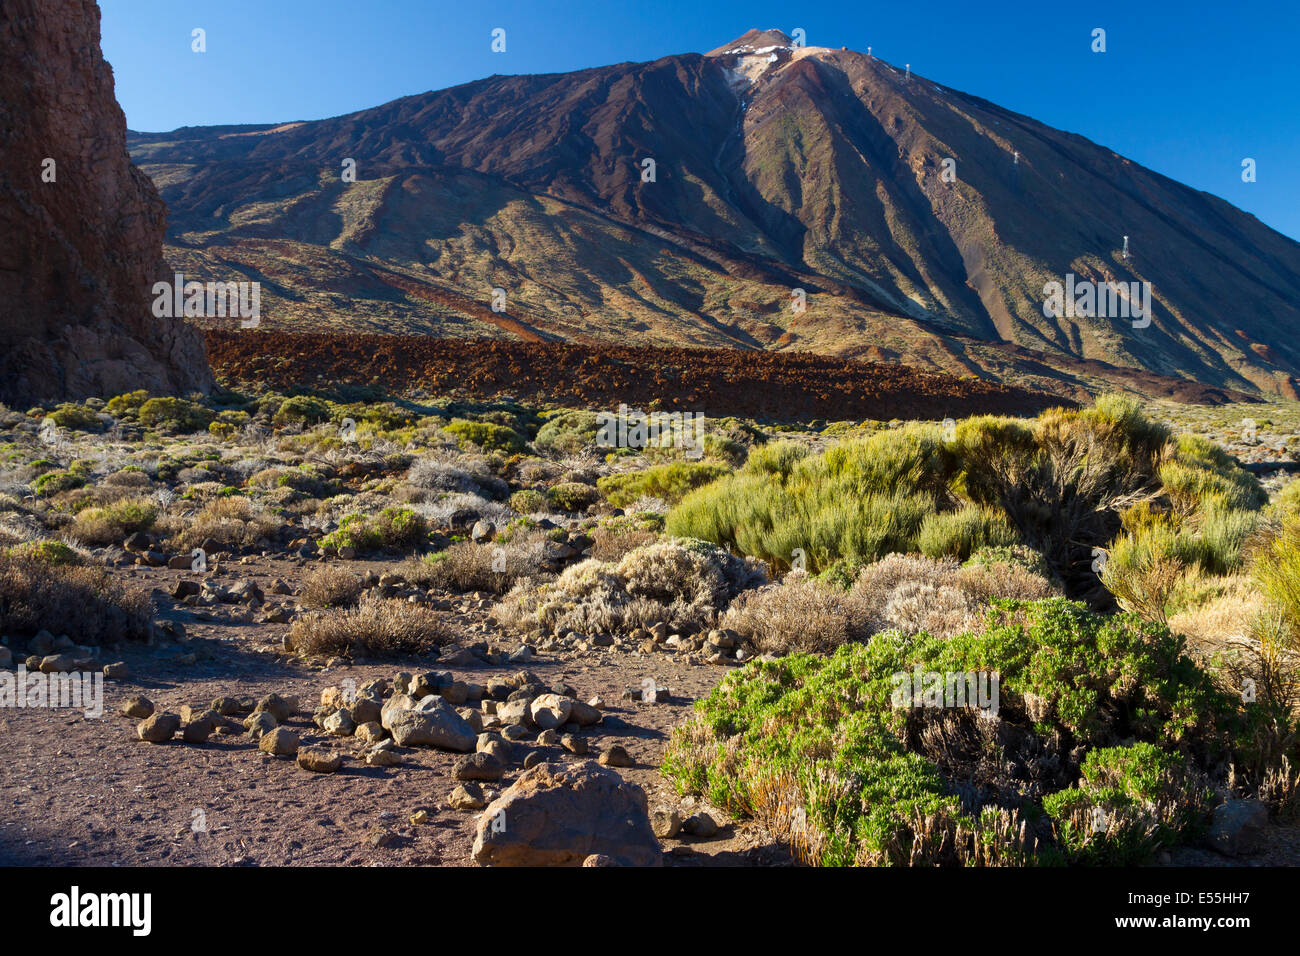 Teide volcano and lava formation. Teide National Park. La Orotava, Tenerife, Canary Islands, Atlantic Ocean, Spain, - Stock Image